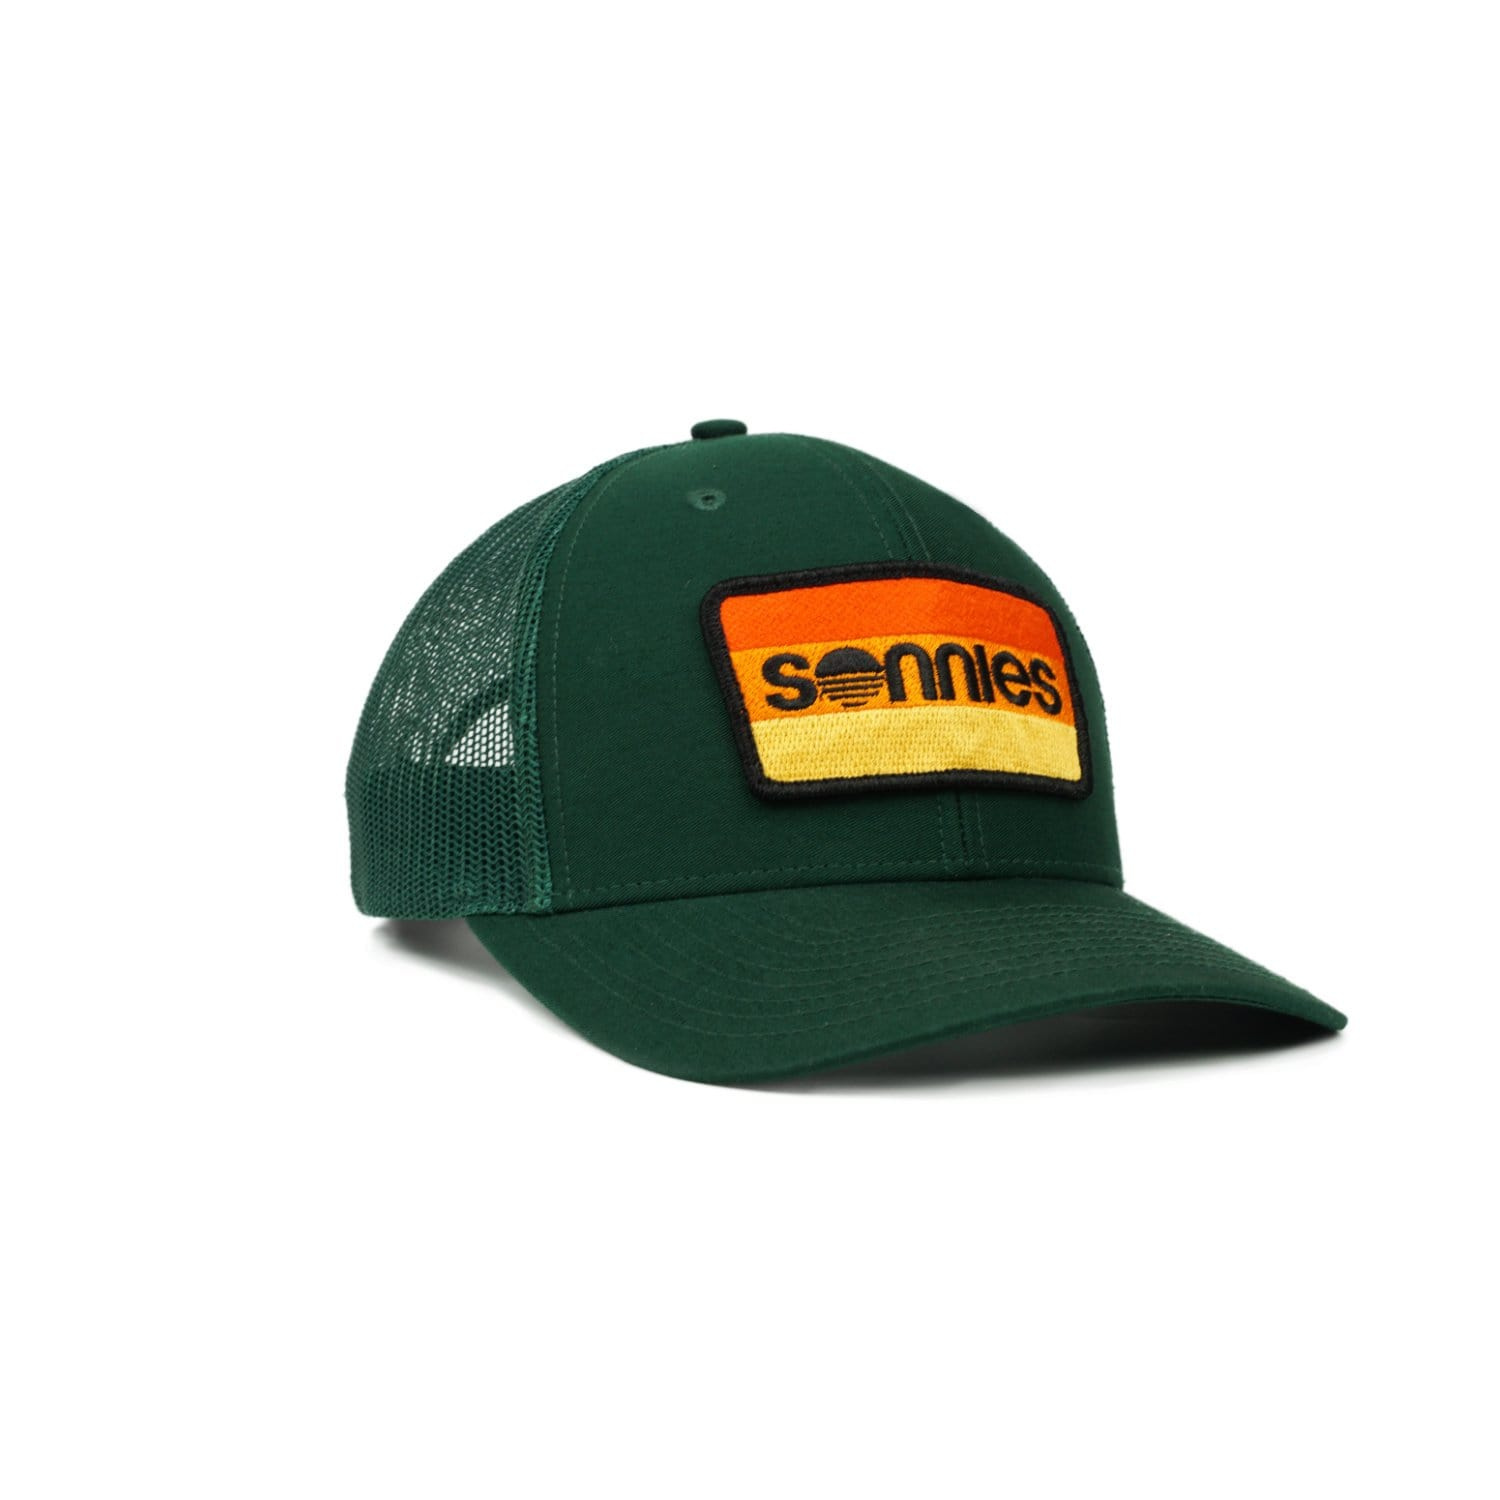 Sonnies Outside - Green Snapback Trucker Hat or Baseball Cap